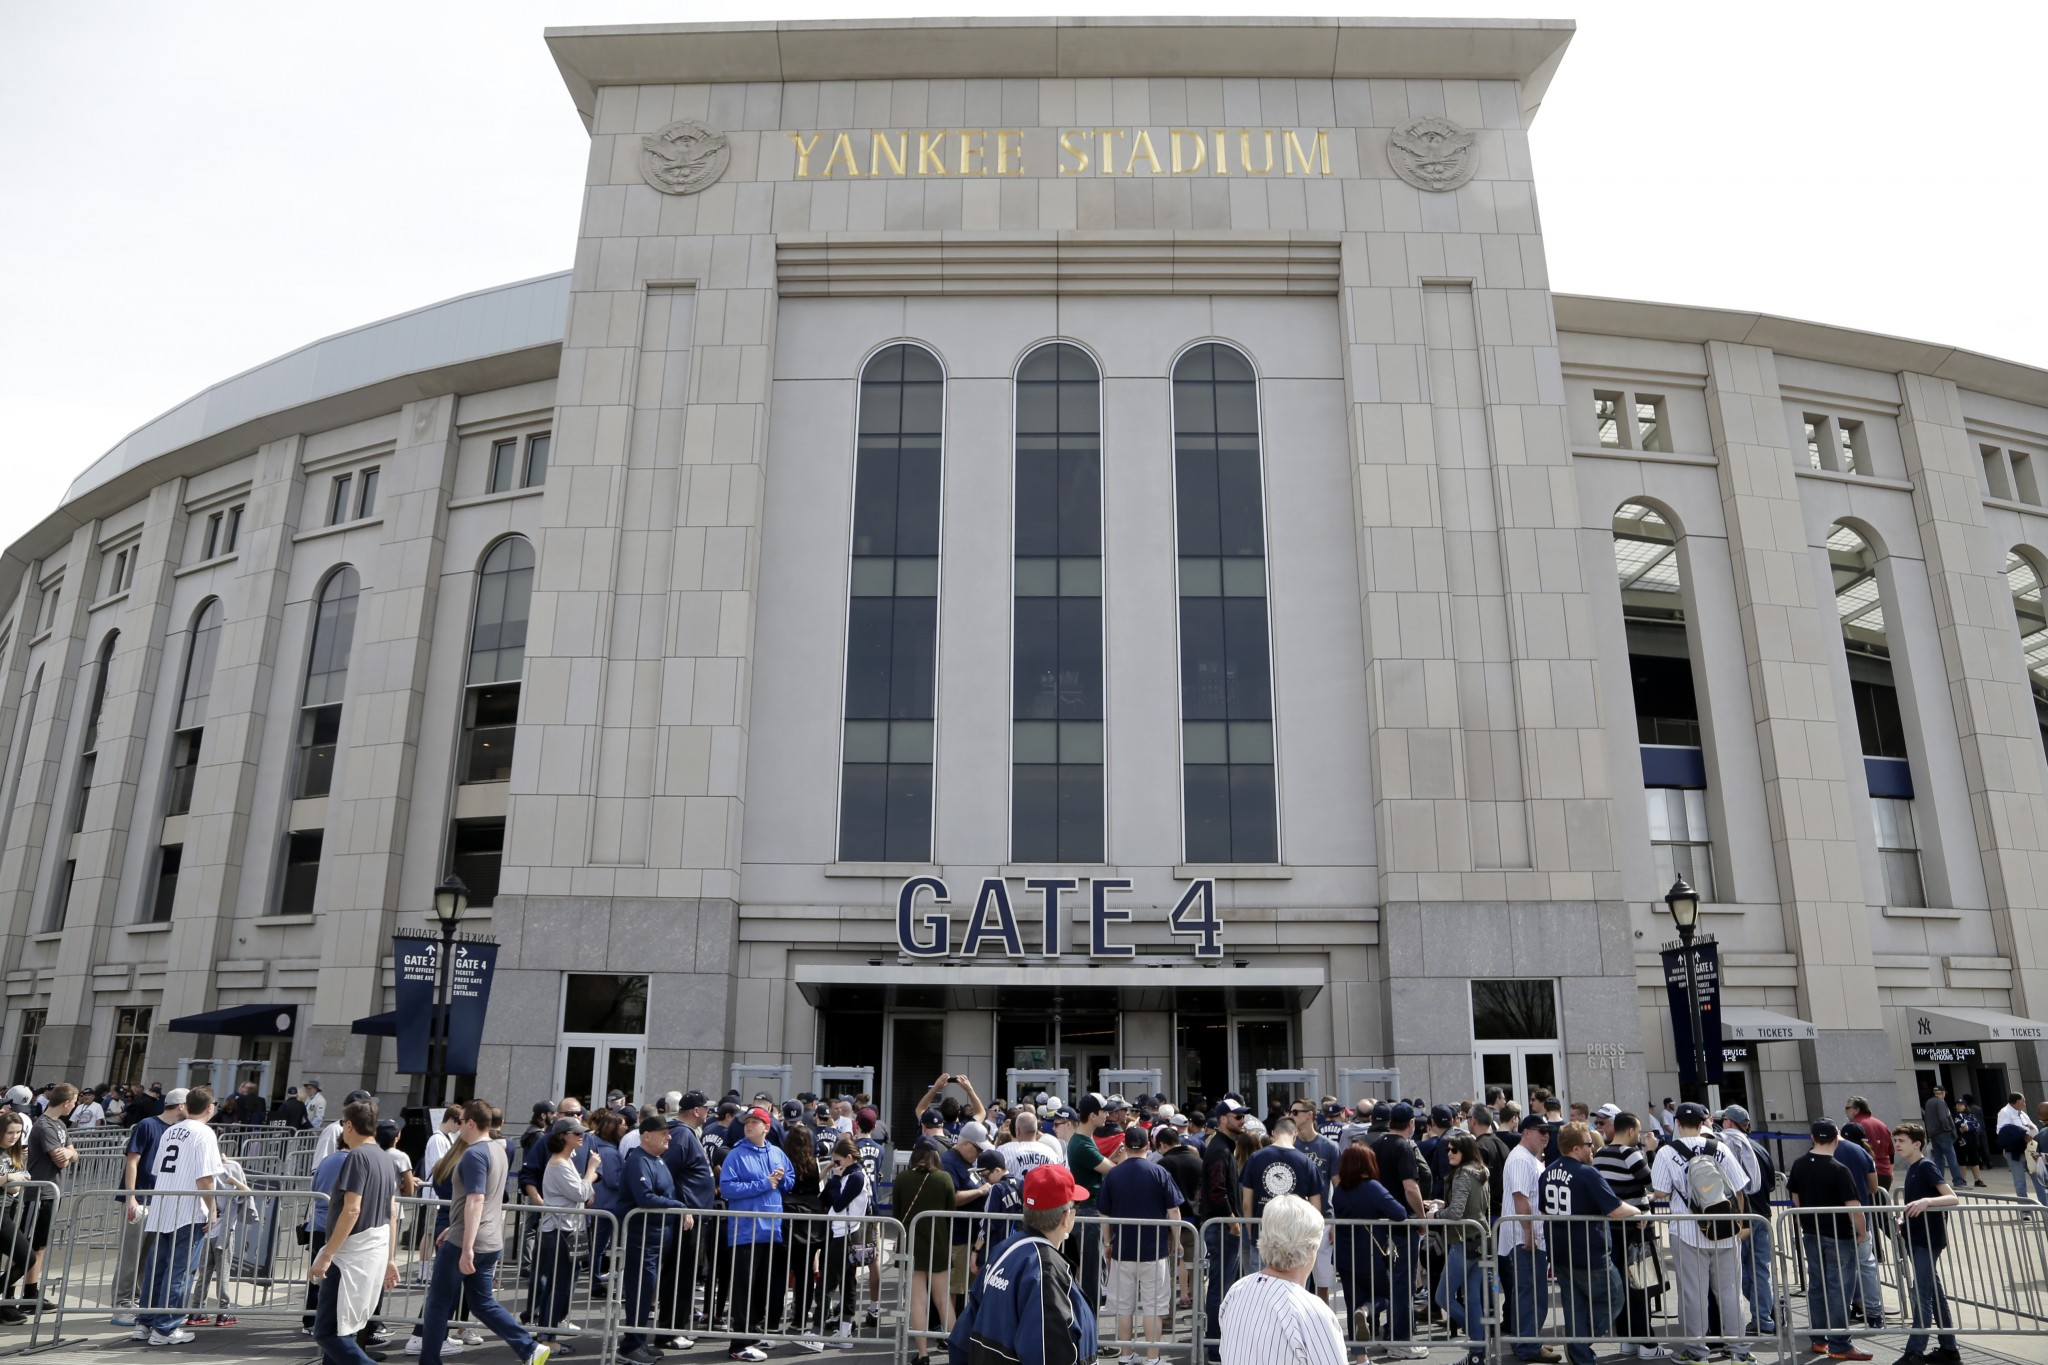 The Yankees' attendance is down about 3,800 per game from last season. (AP)